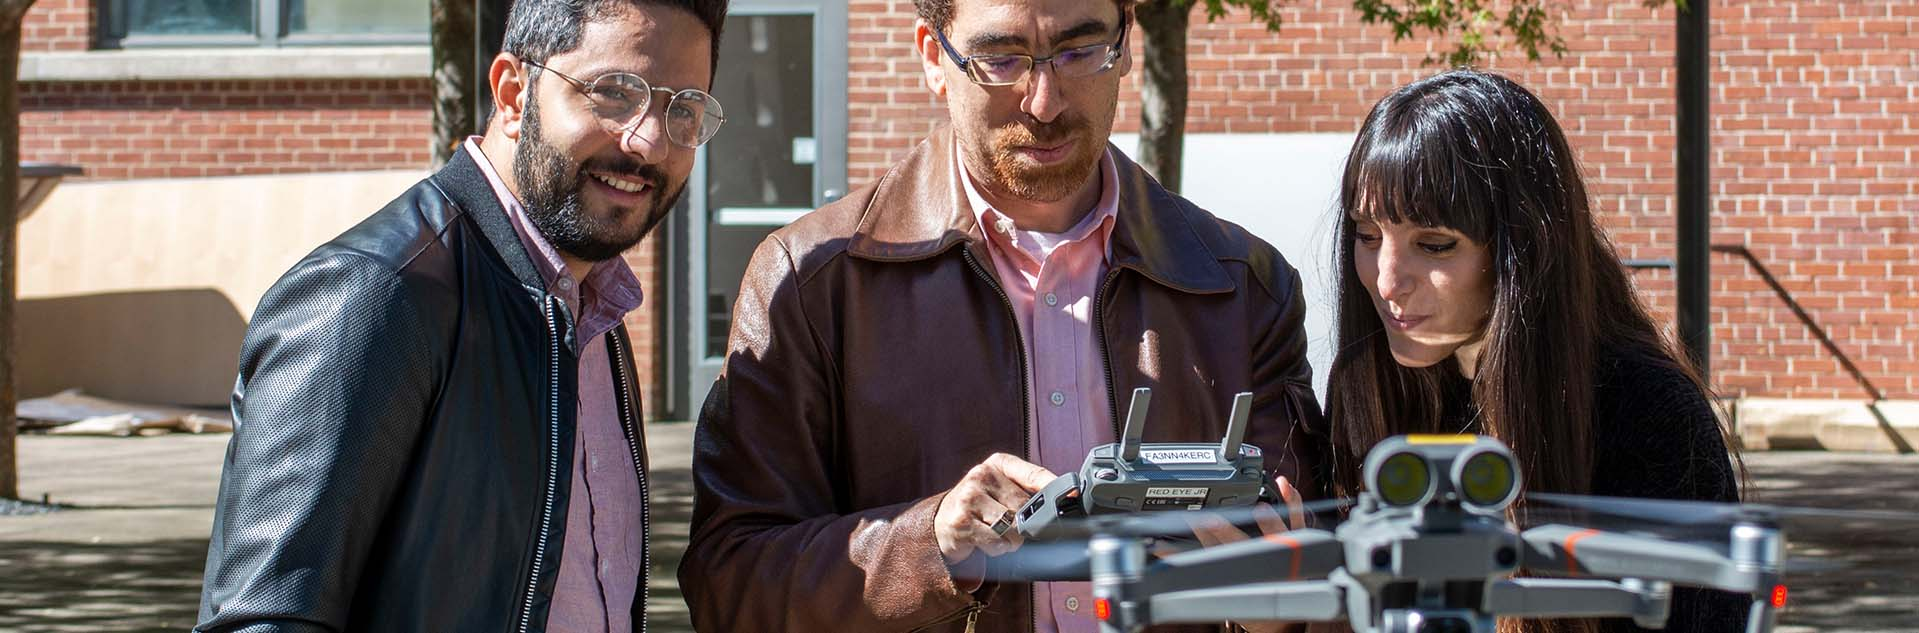 Tarek Rakha and High Performance Building Students Test Out New Drone